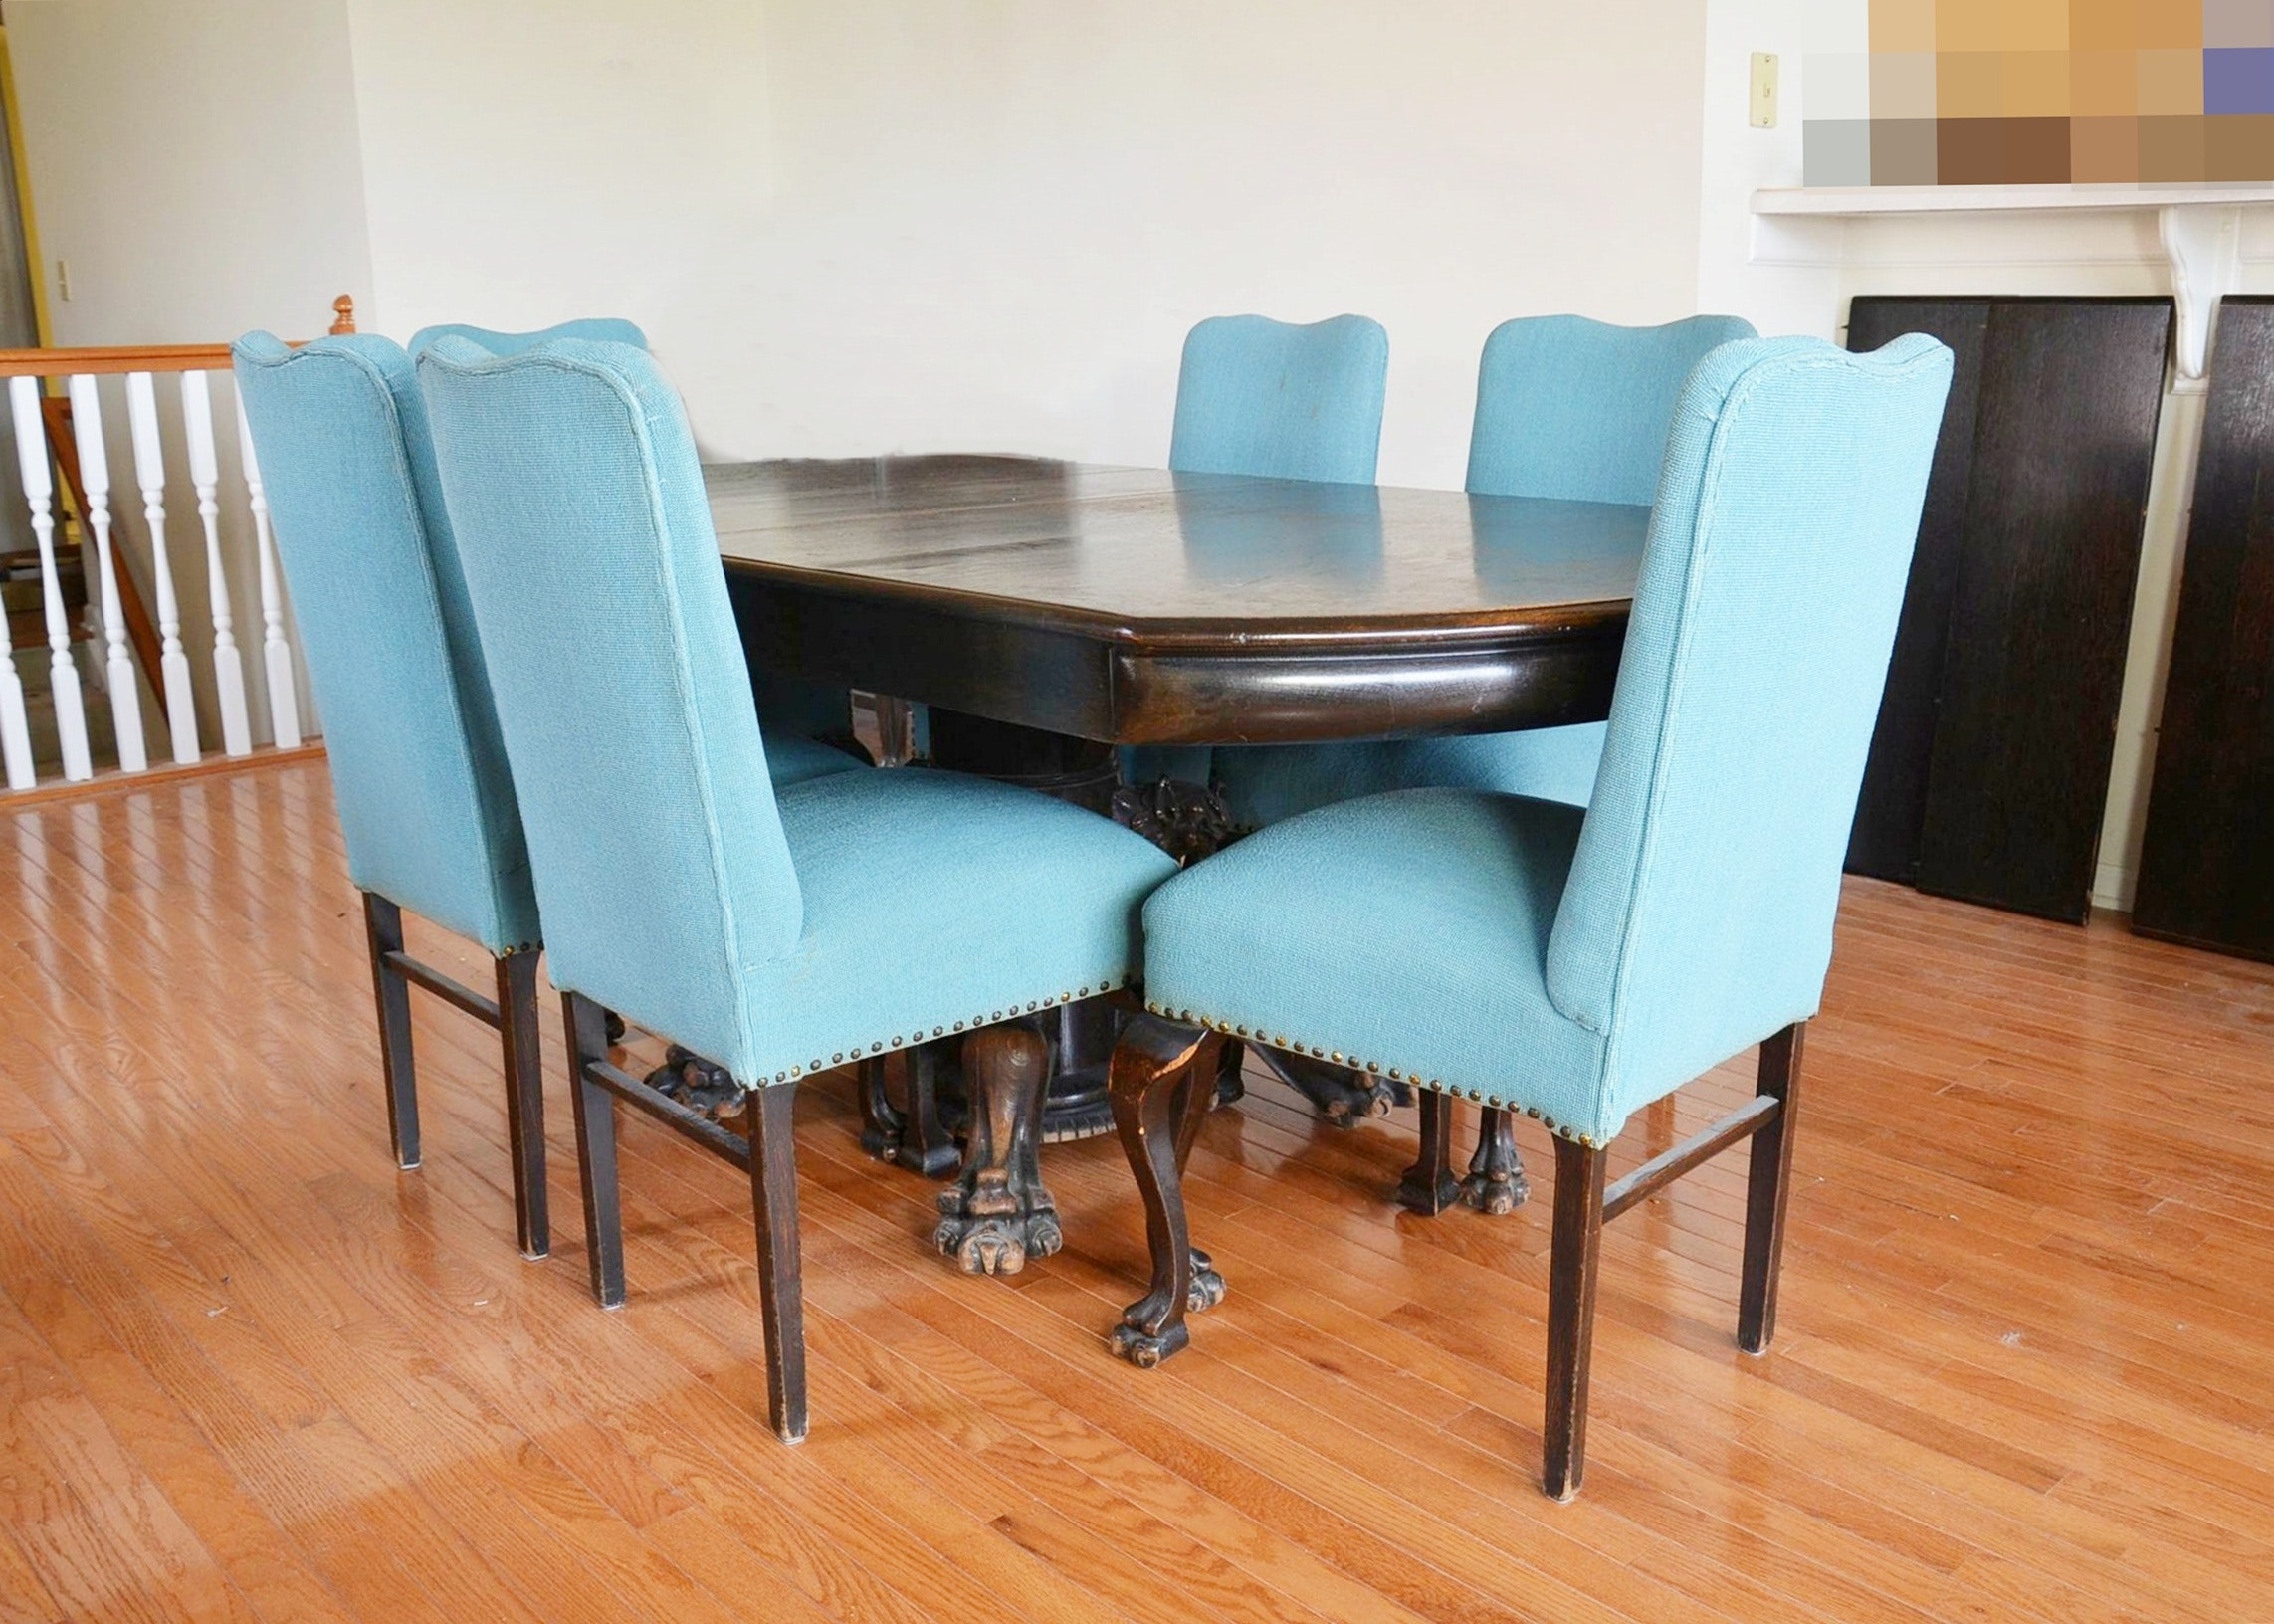 Renaissance style dining room table with eight upholstered chairs.